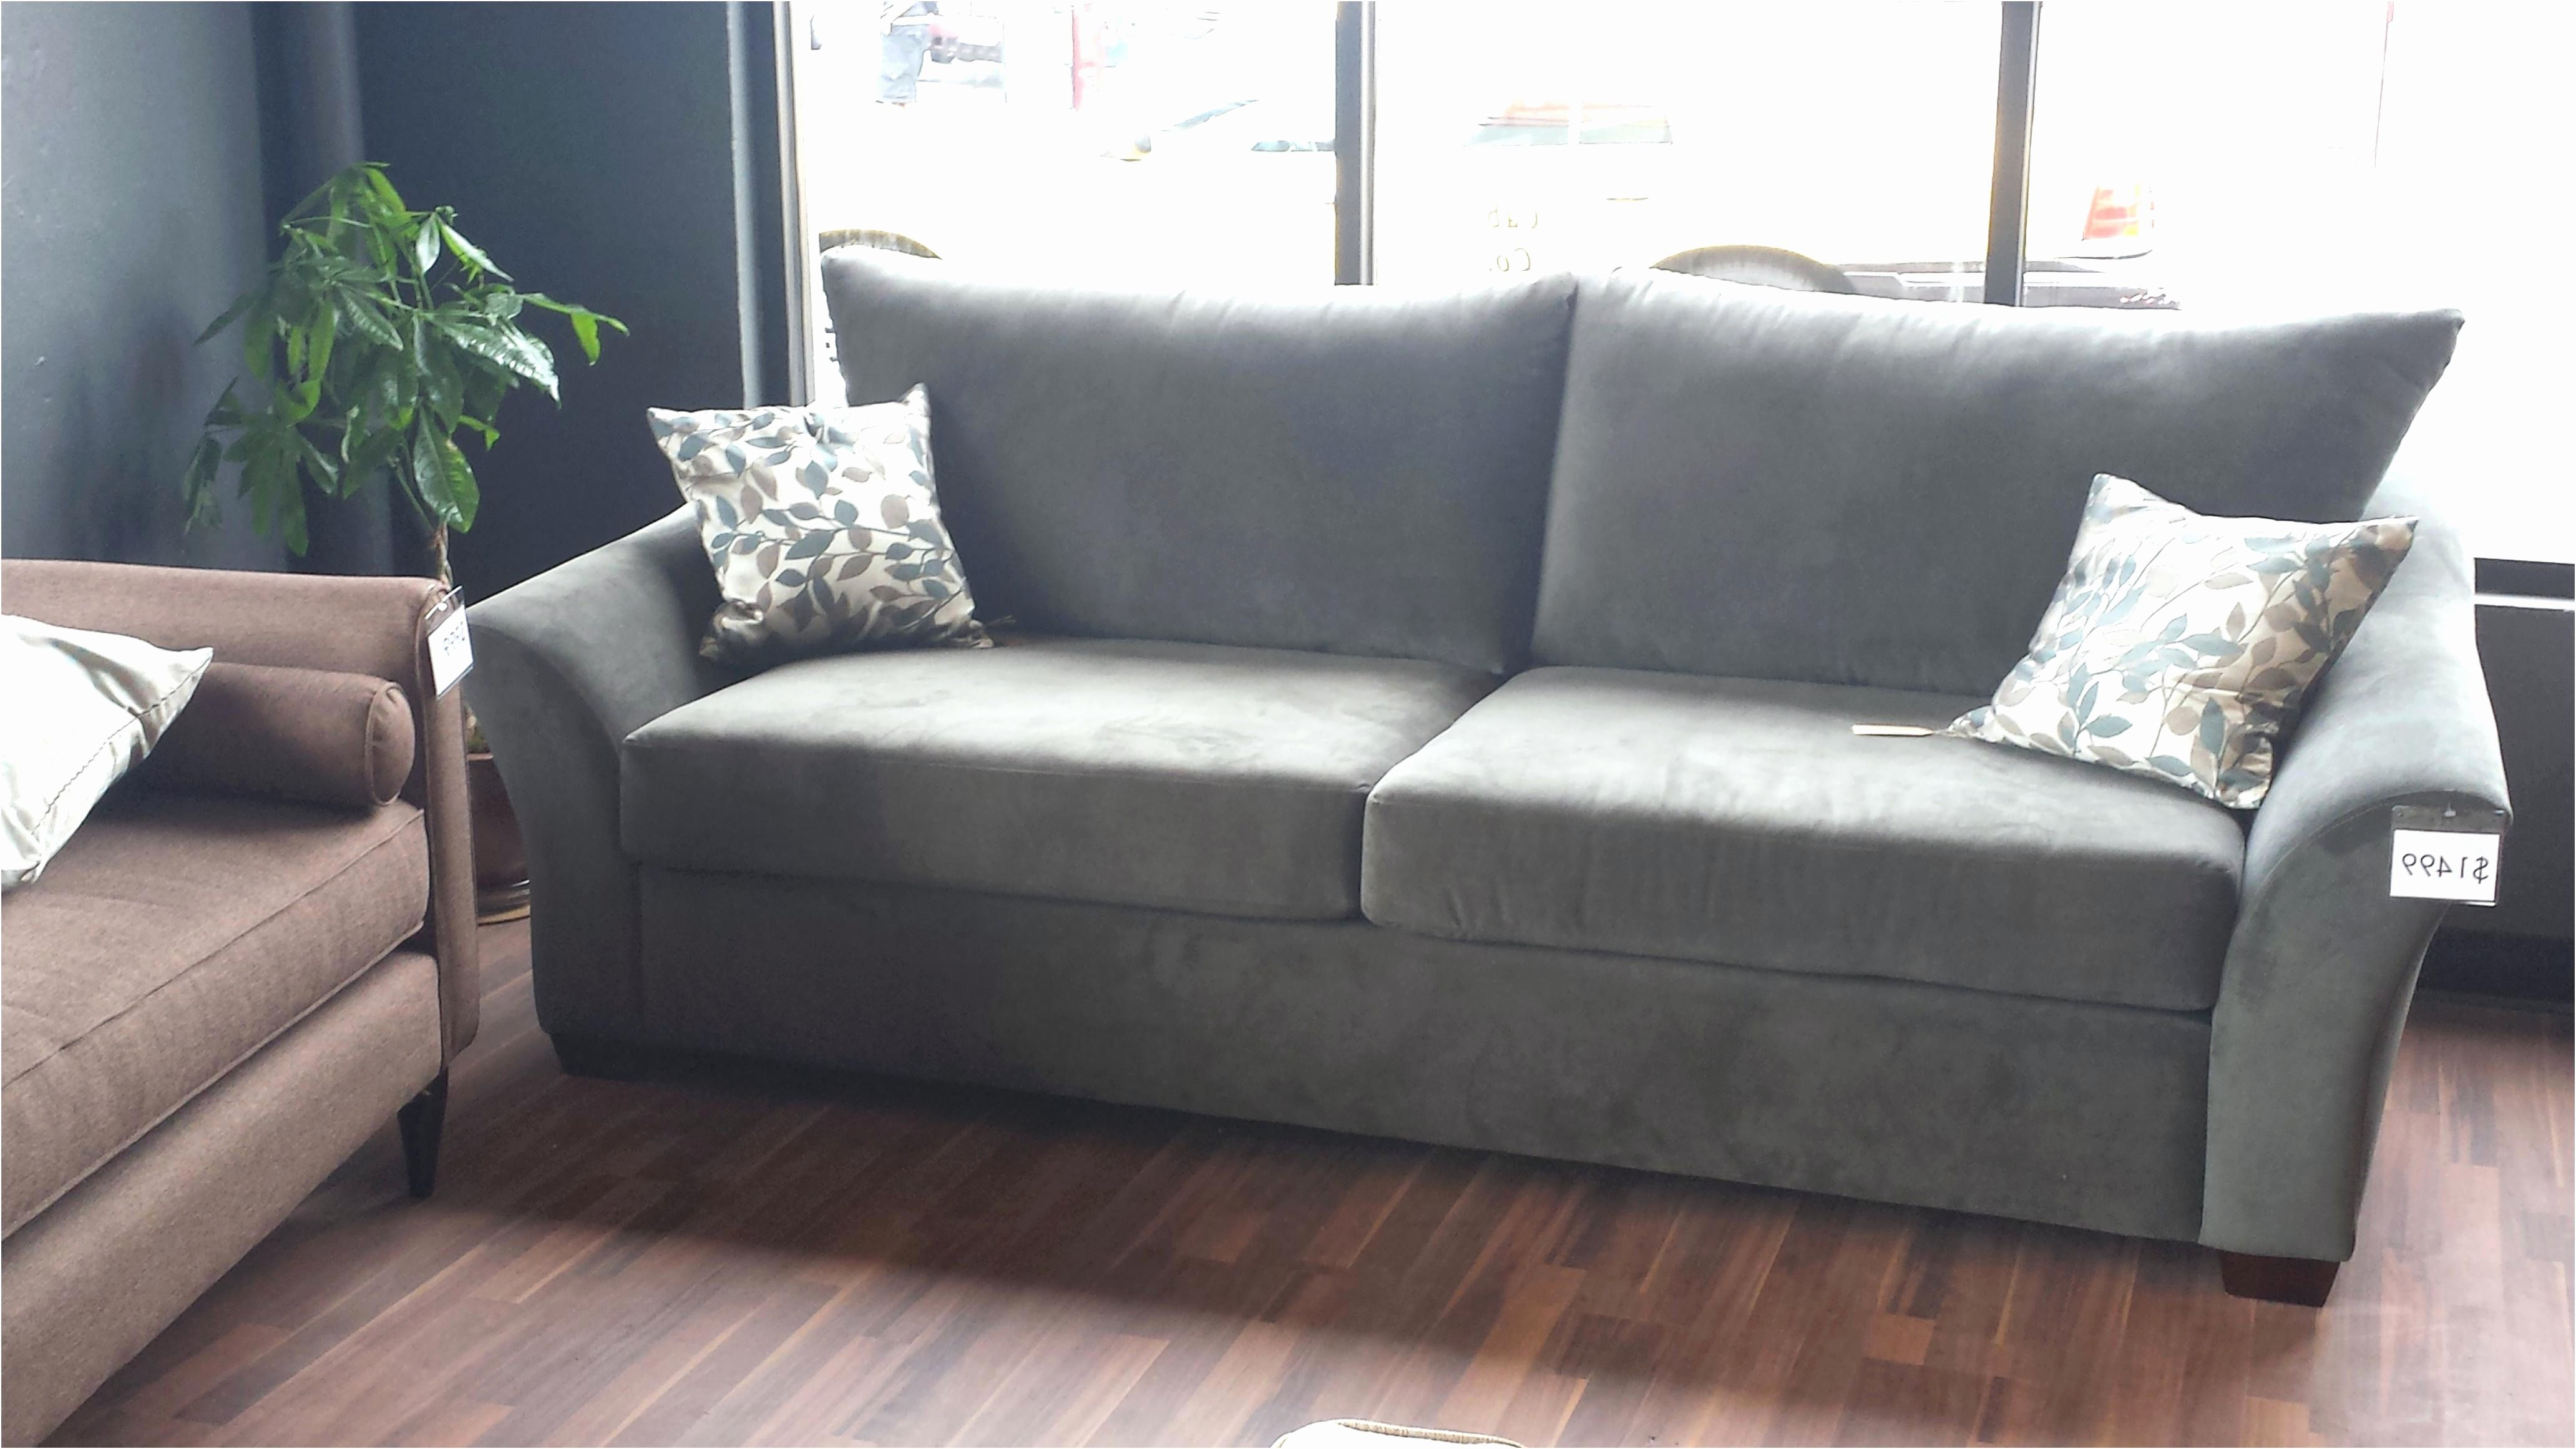 Bon Luxury Deep Sectional Sofa With Chaise Images Deep Seated Couches Canada Ed  Es Sofa For Sale